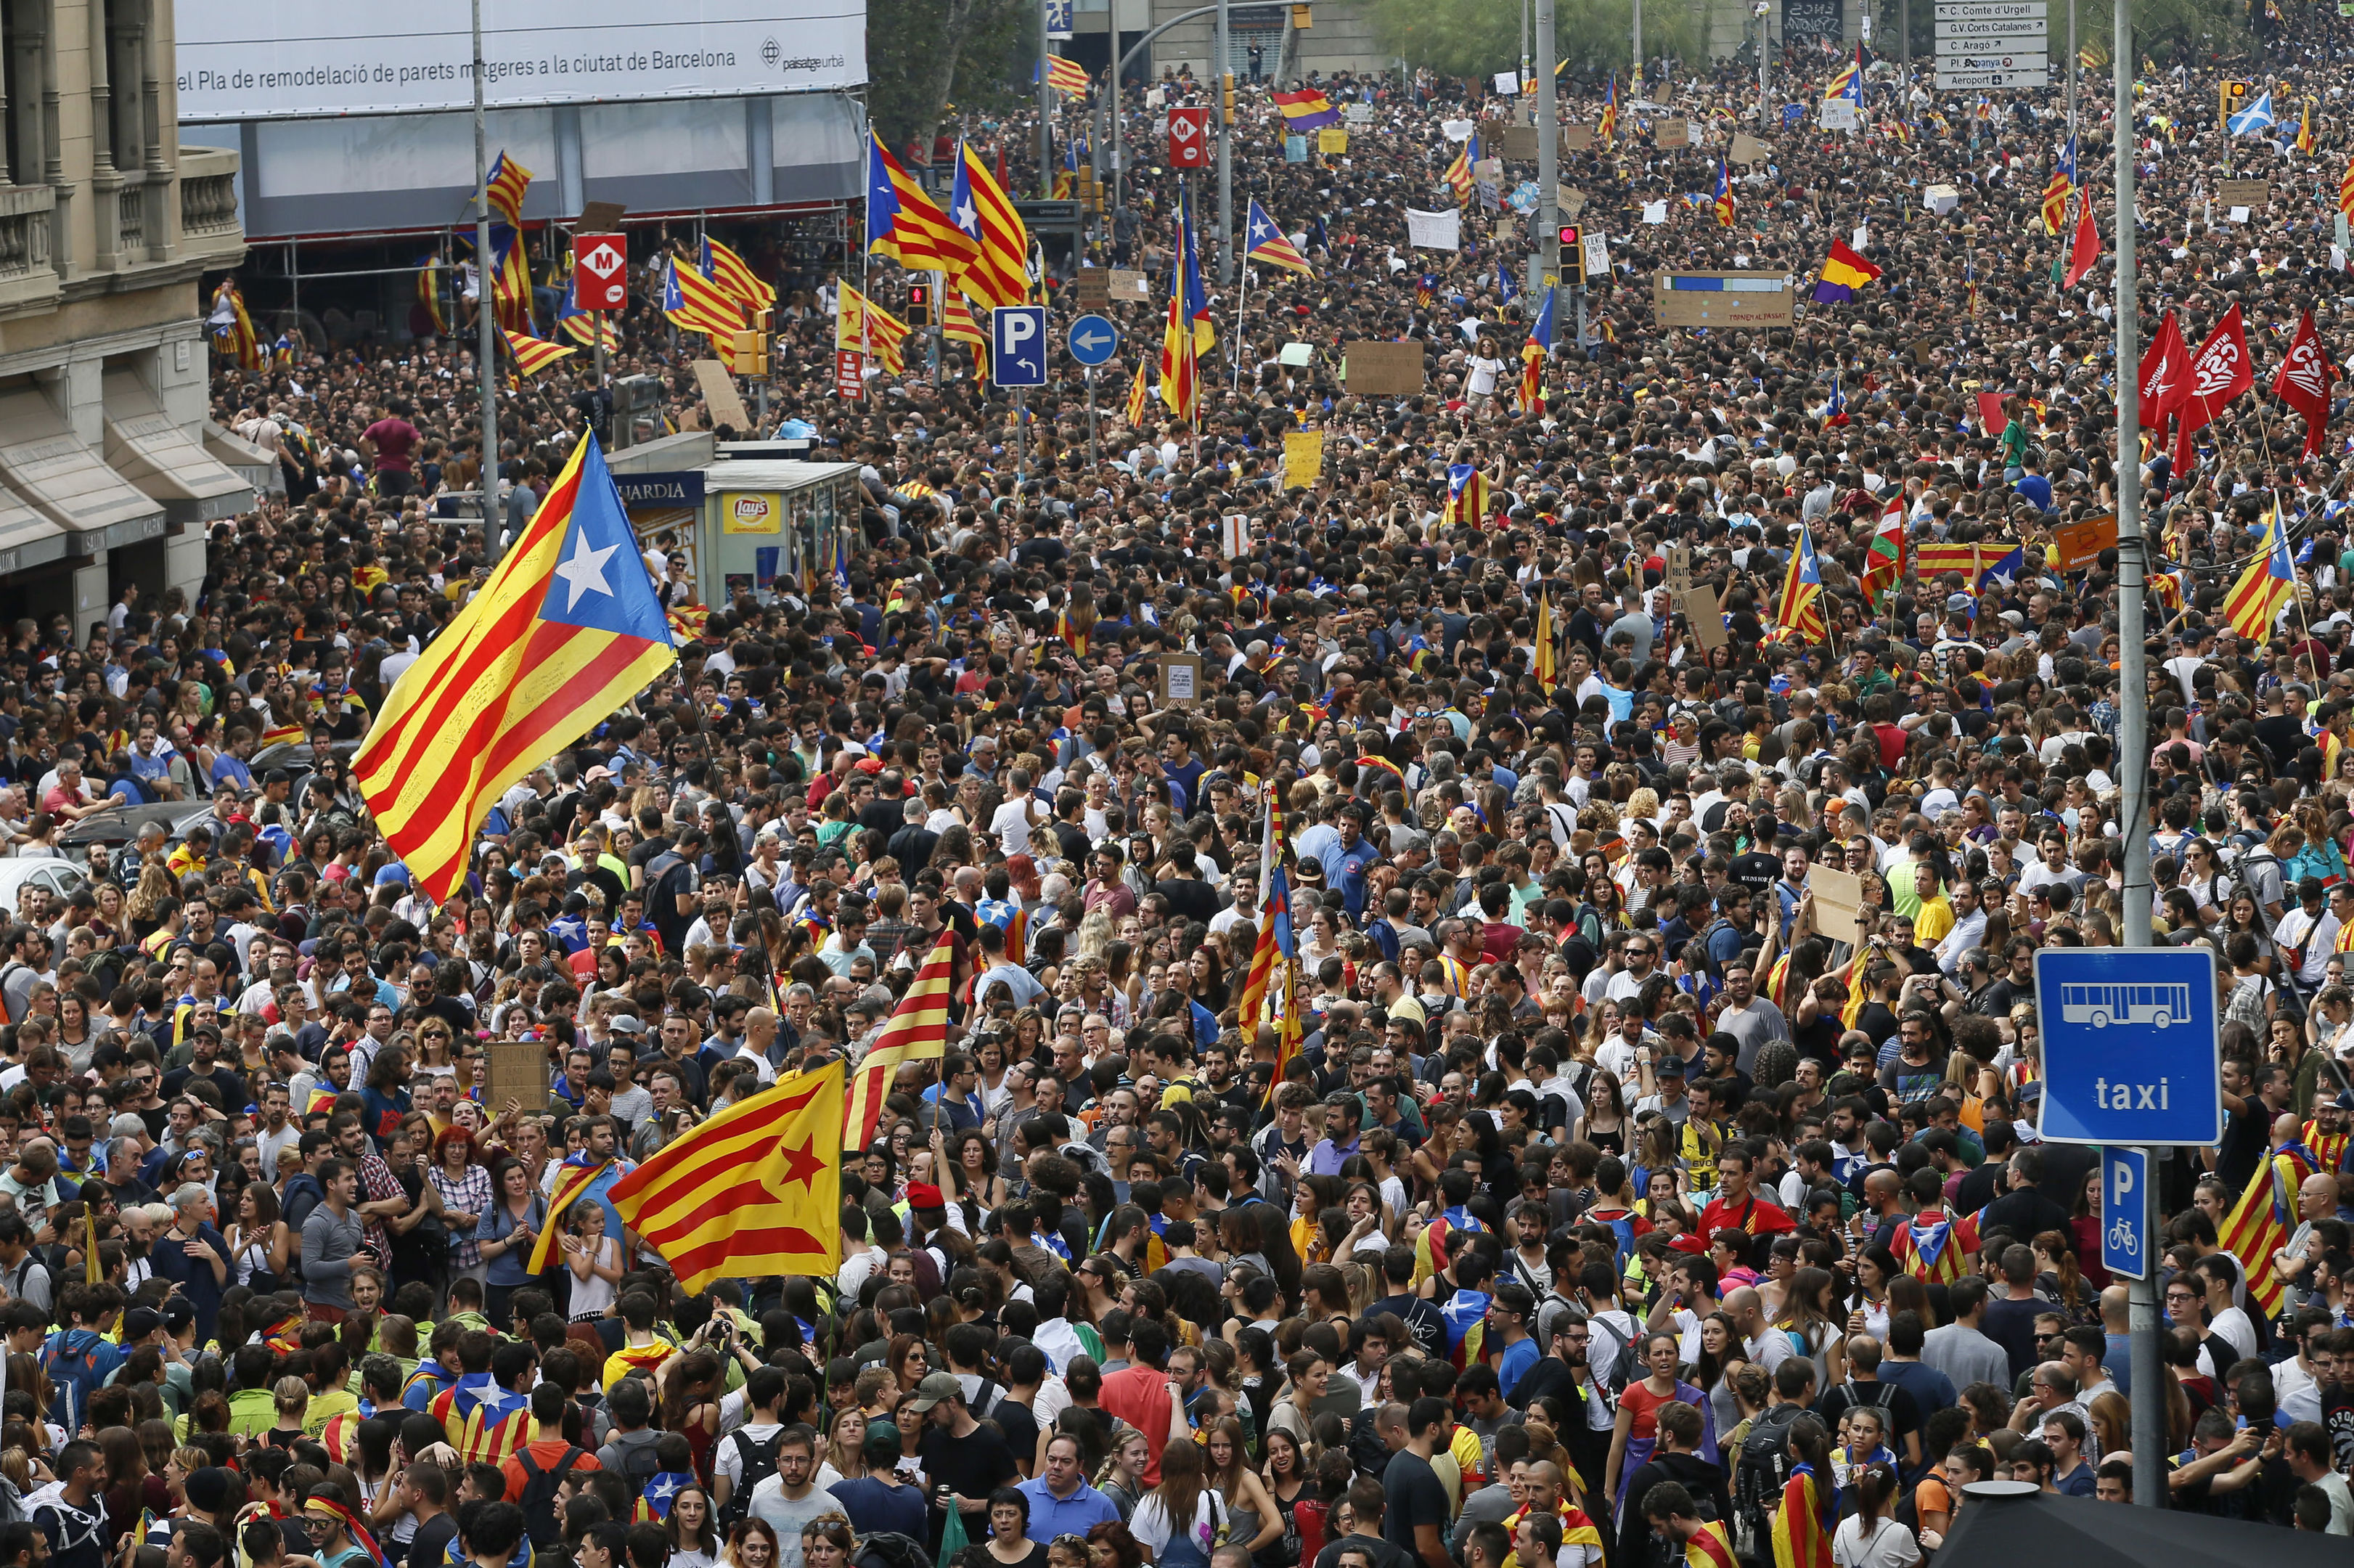 Protesters, some with ''esteladas'' or Catalonia independence flags pack the city center during a one-day strike in Barcelona, Spain, Tuesday Oct. 3, 2017. (AP Photo/Bob Edme)